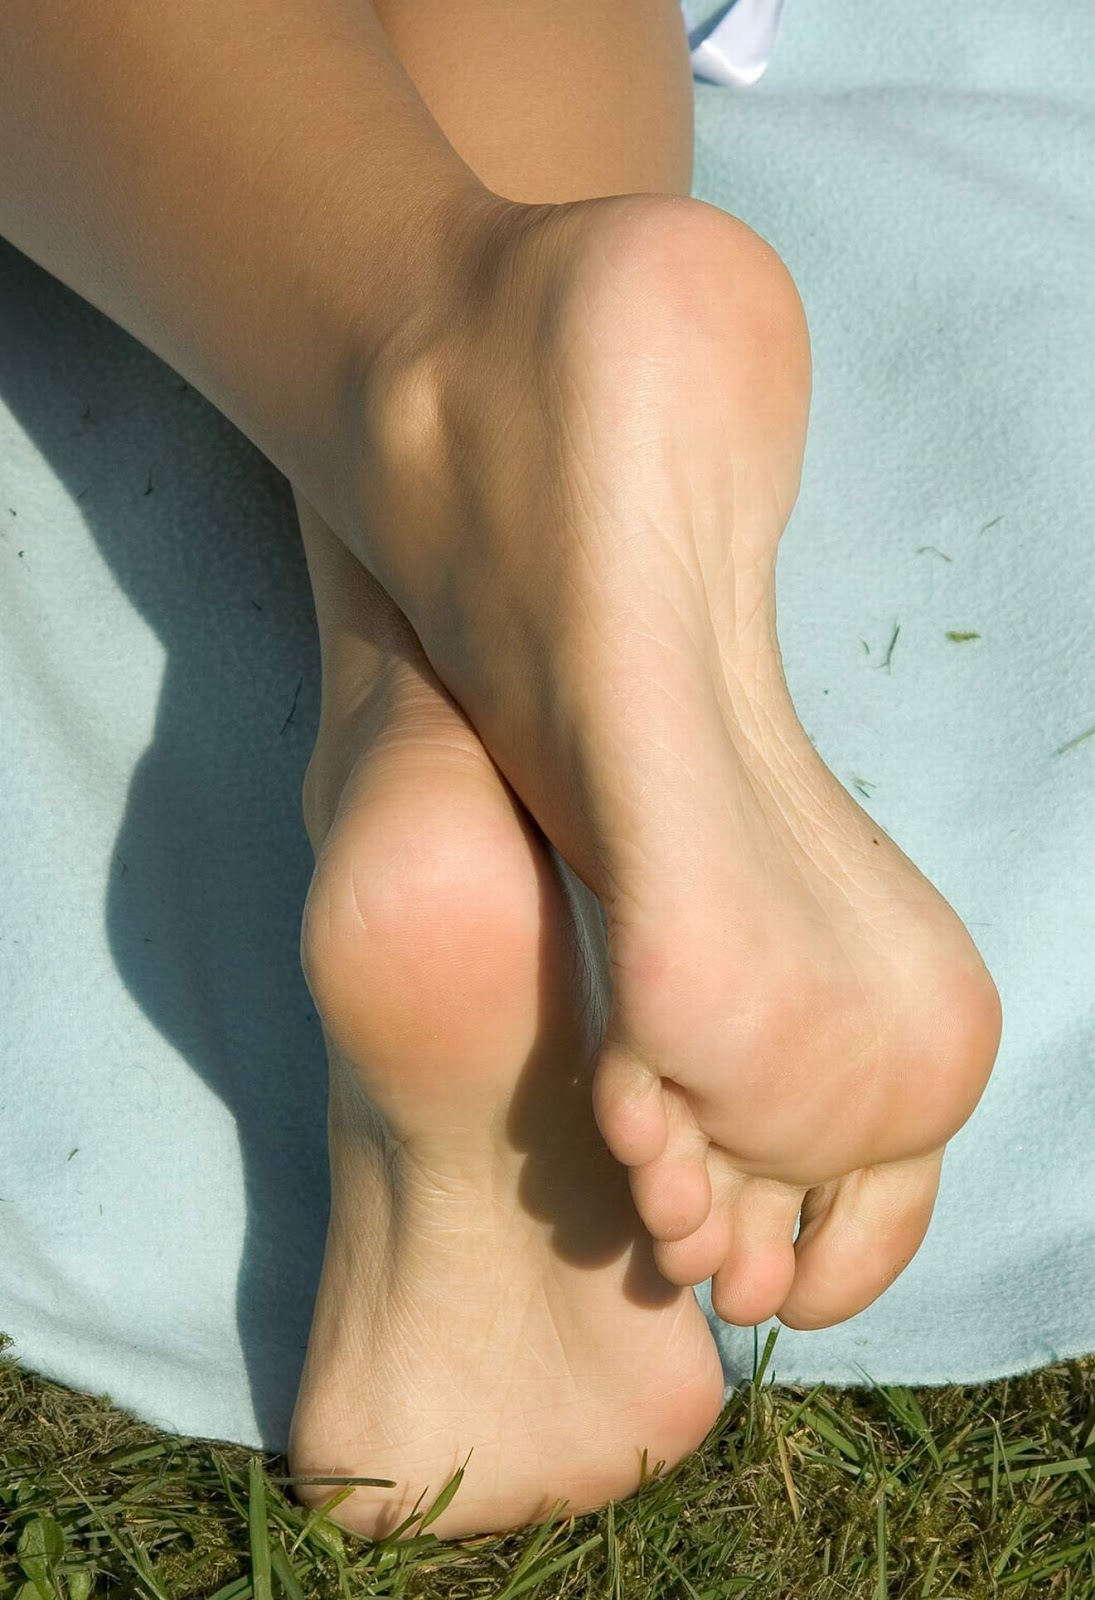 Foot fetish soles toes footjob handjob simulation